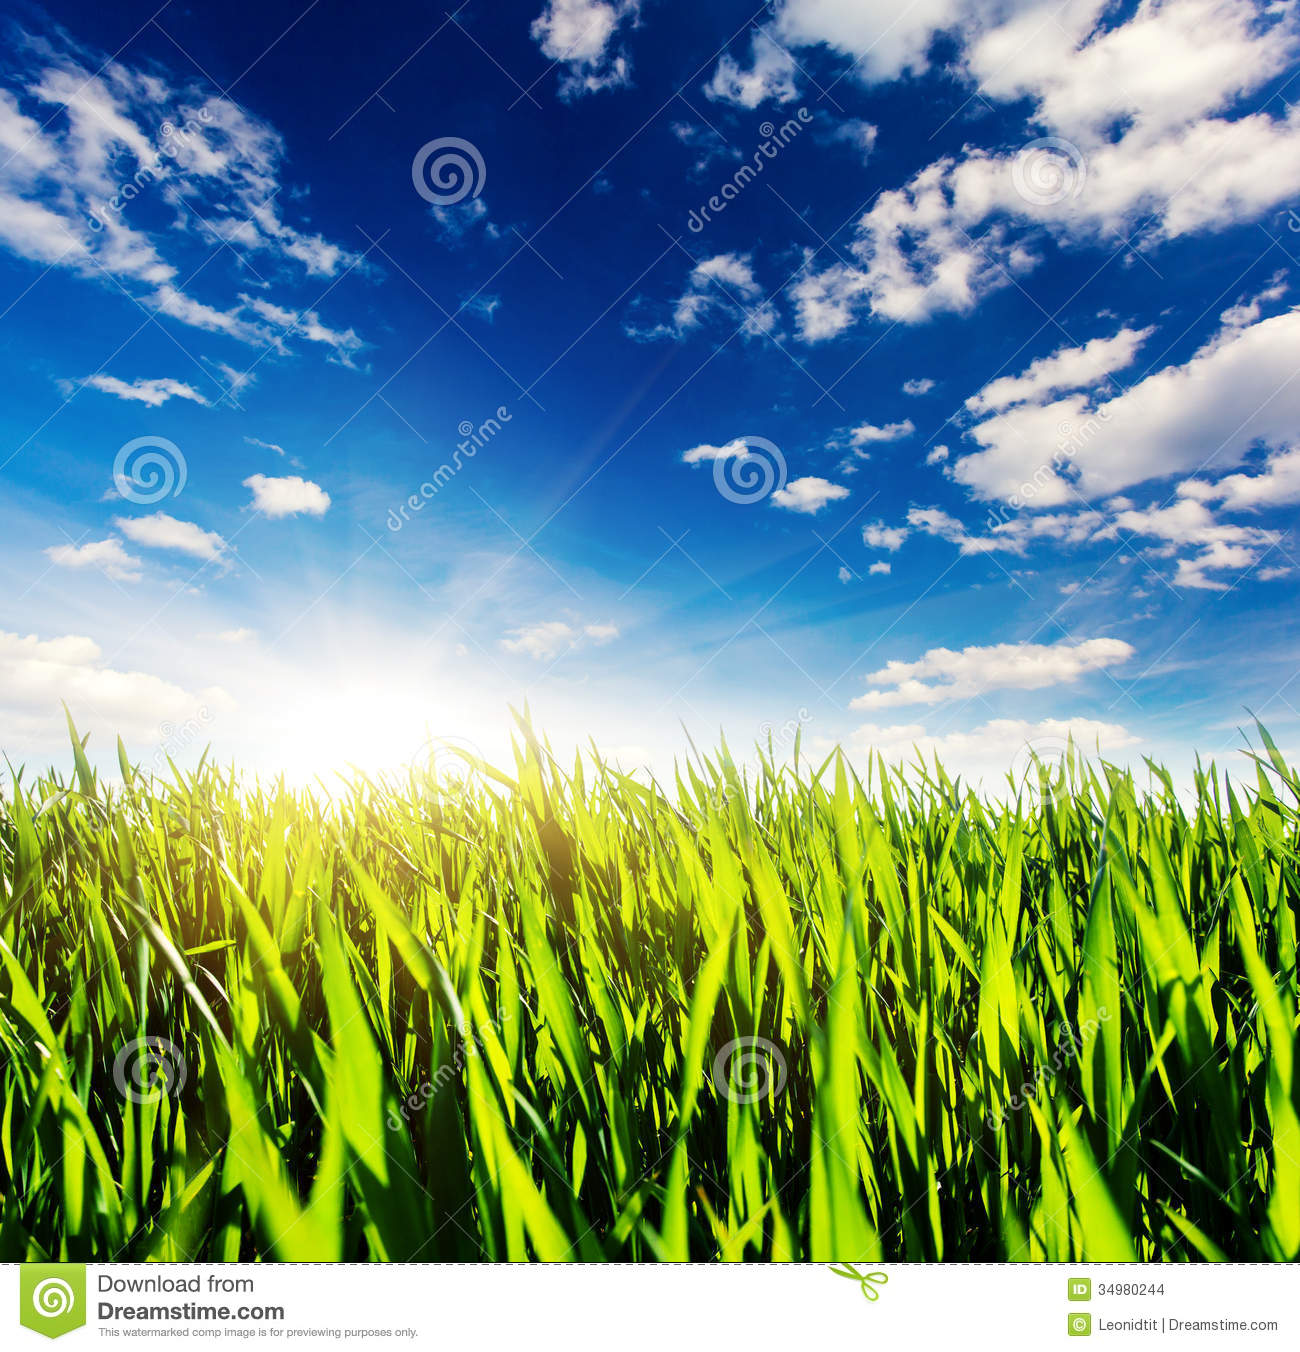 Grass stock photo. Image of grow, lawn, field, nature ...